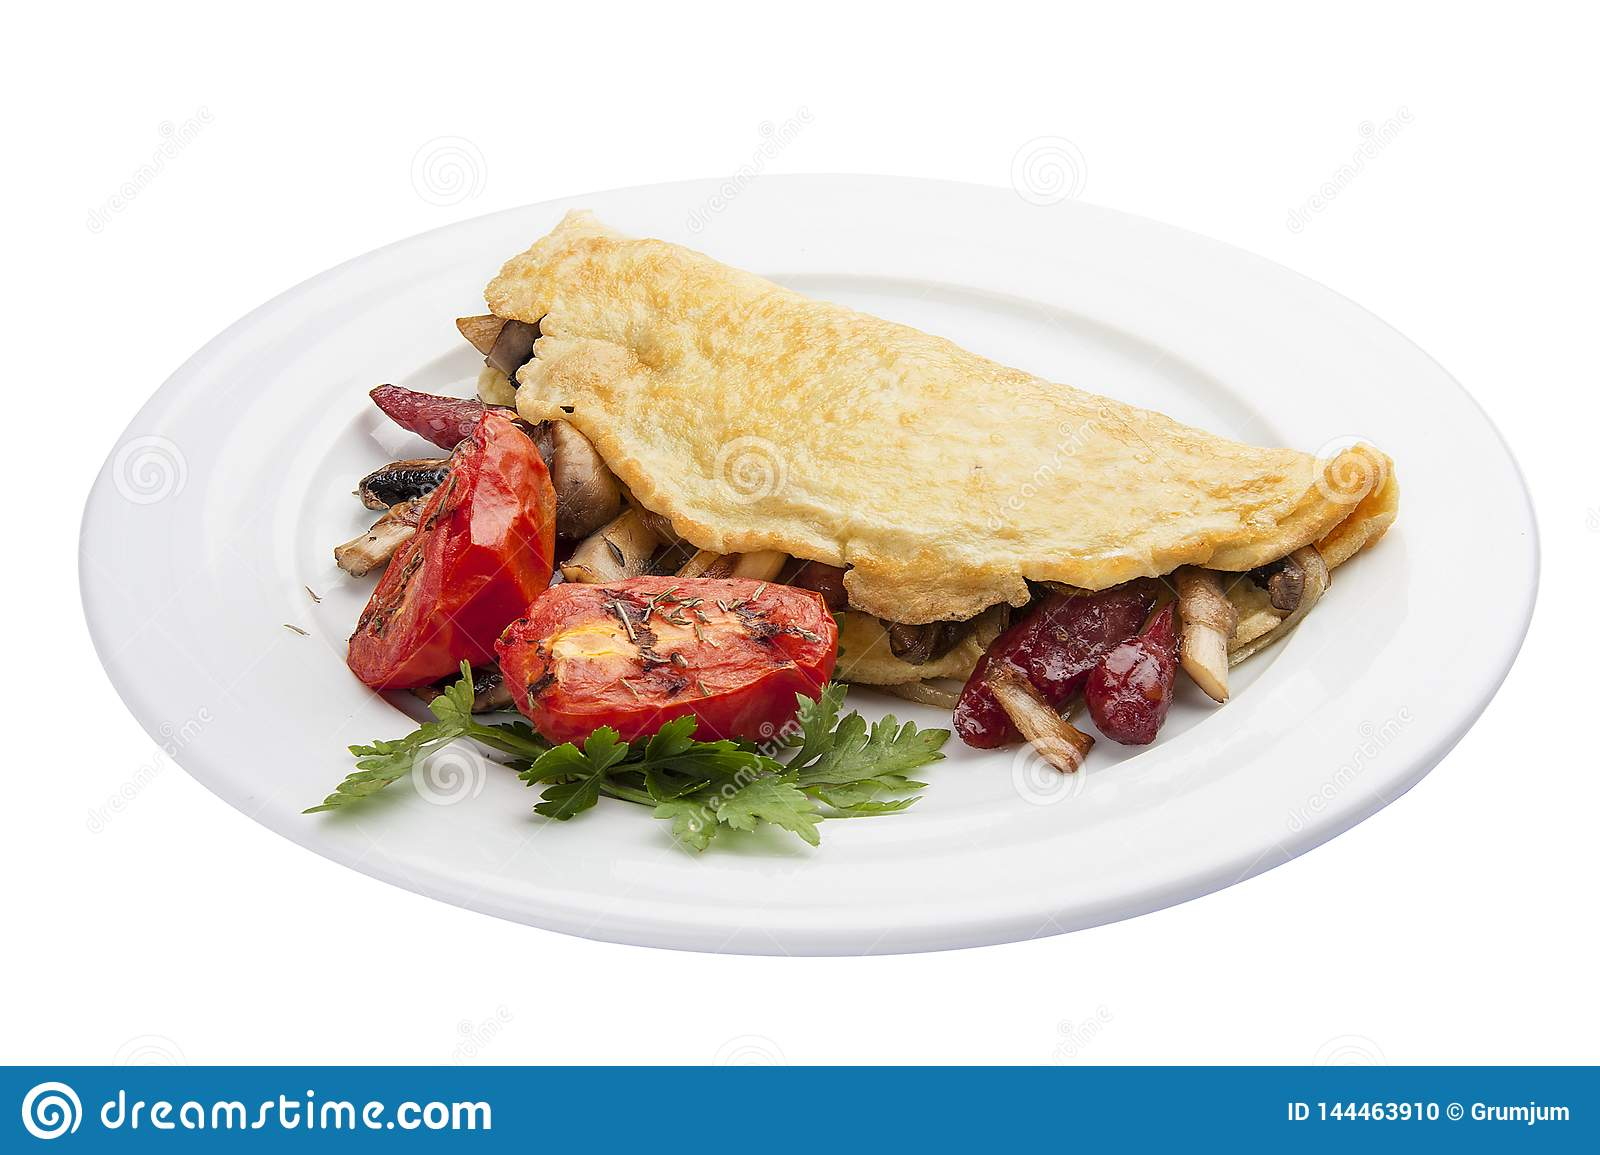 Breakfast. Omelette with sausage and tomatoes